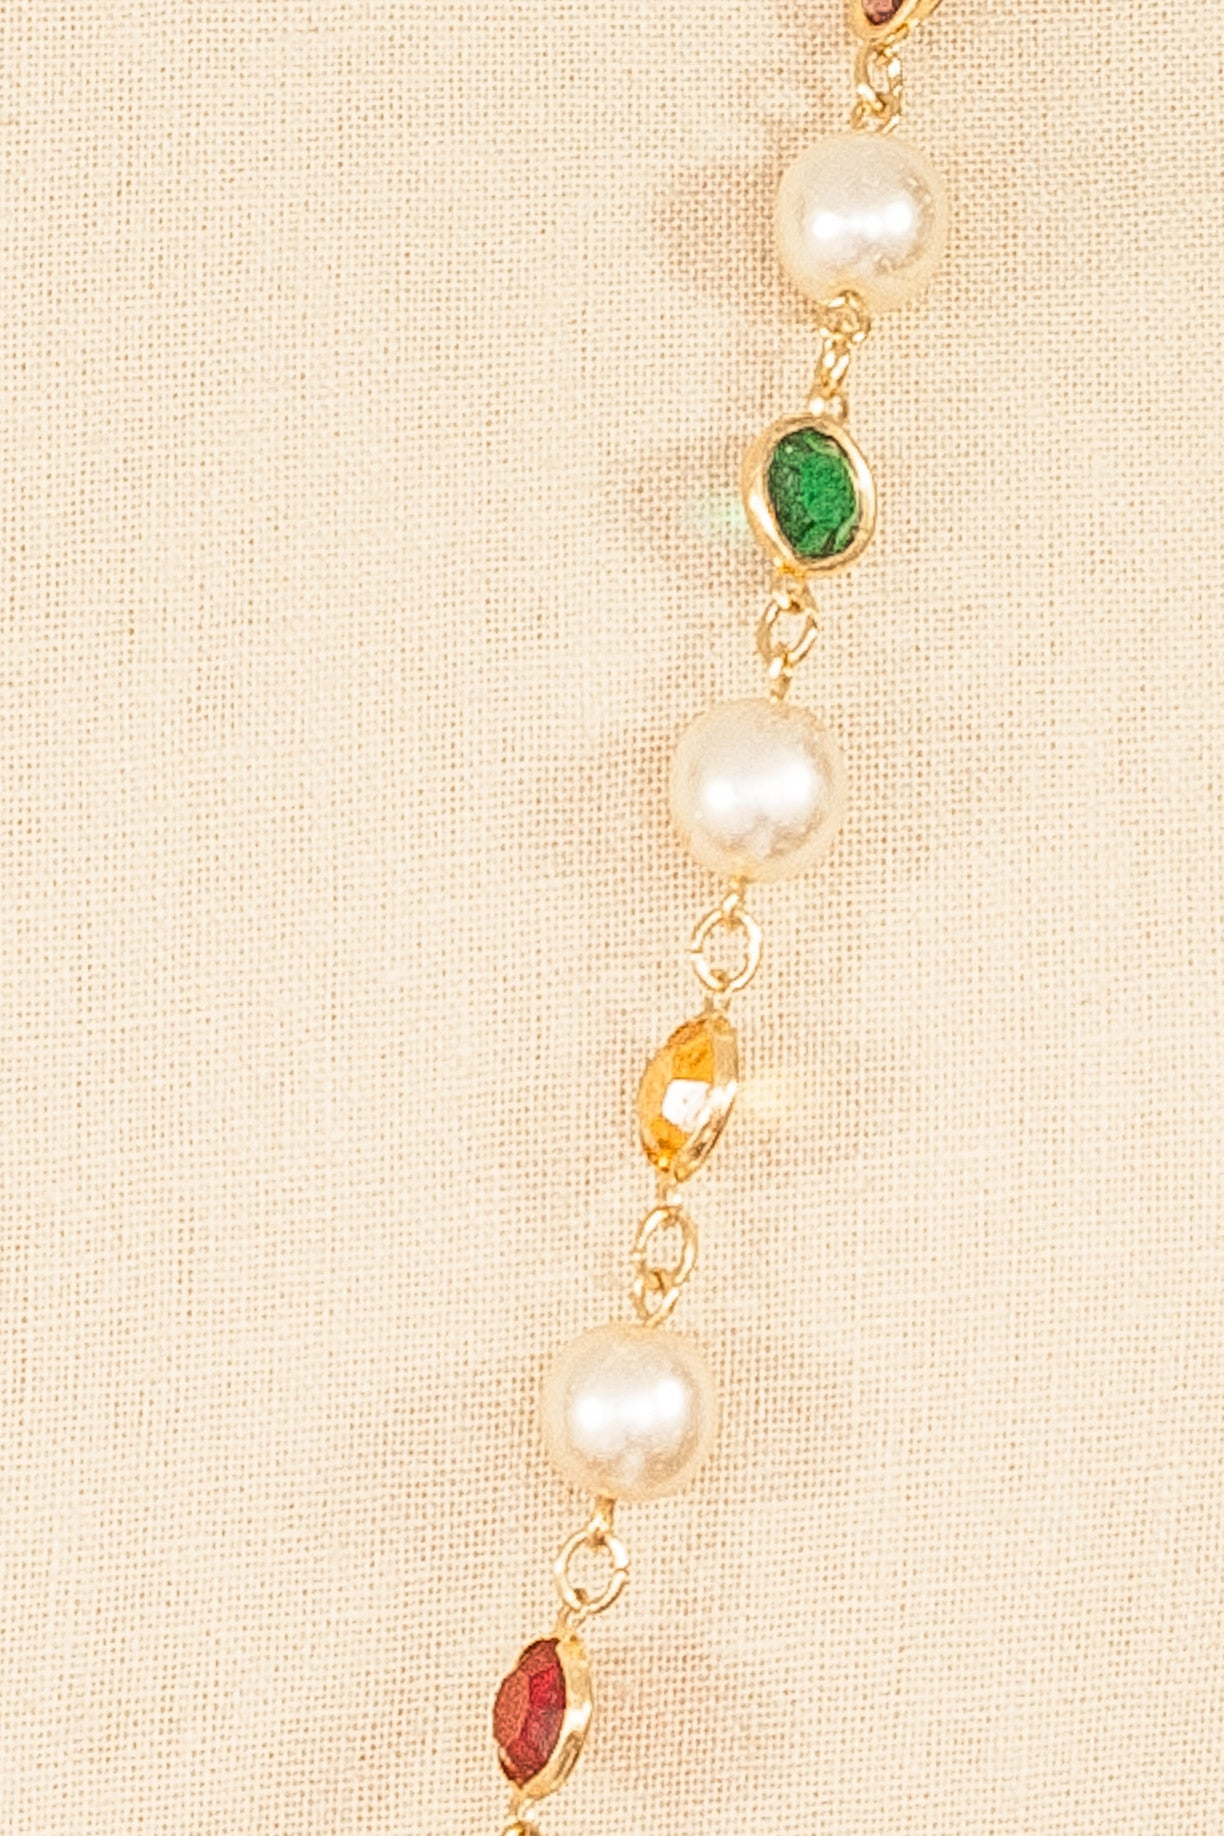 80's__Vintage__Pearl and Crystal Necklace